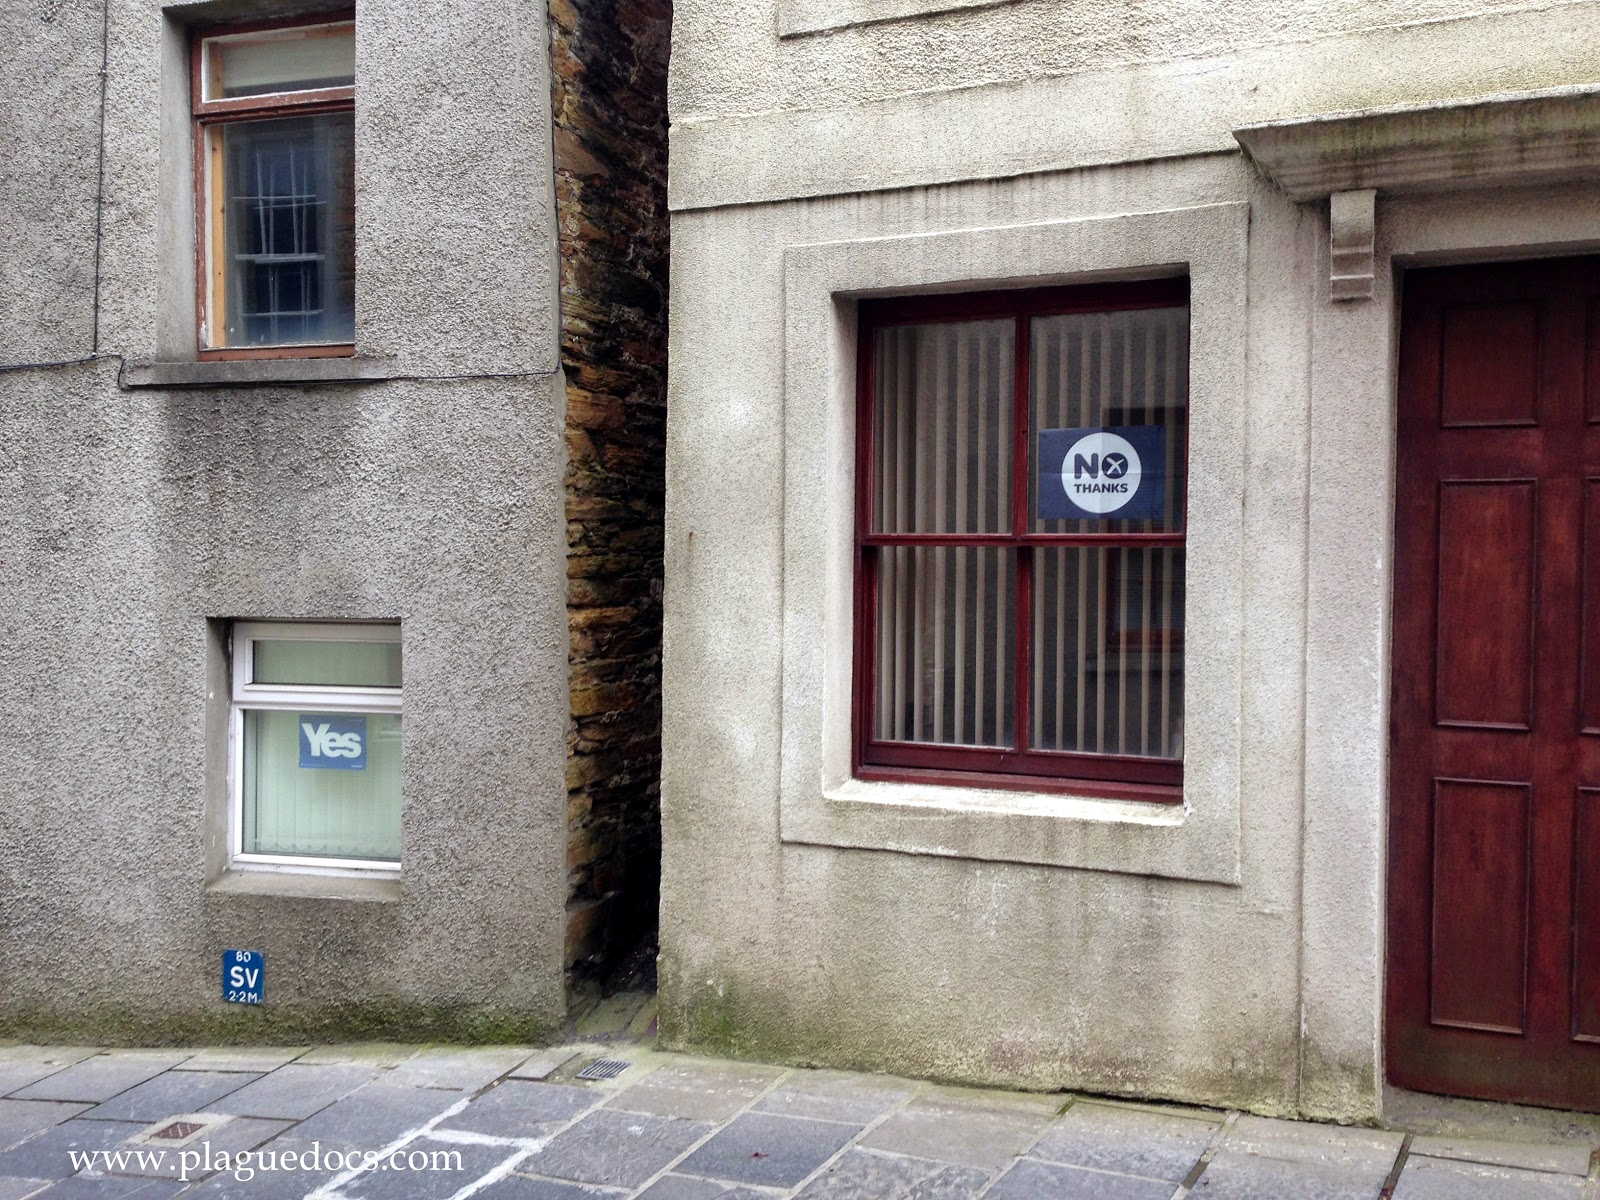 Scottish independence election signs, Stromness, Orkney